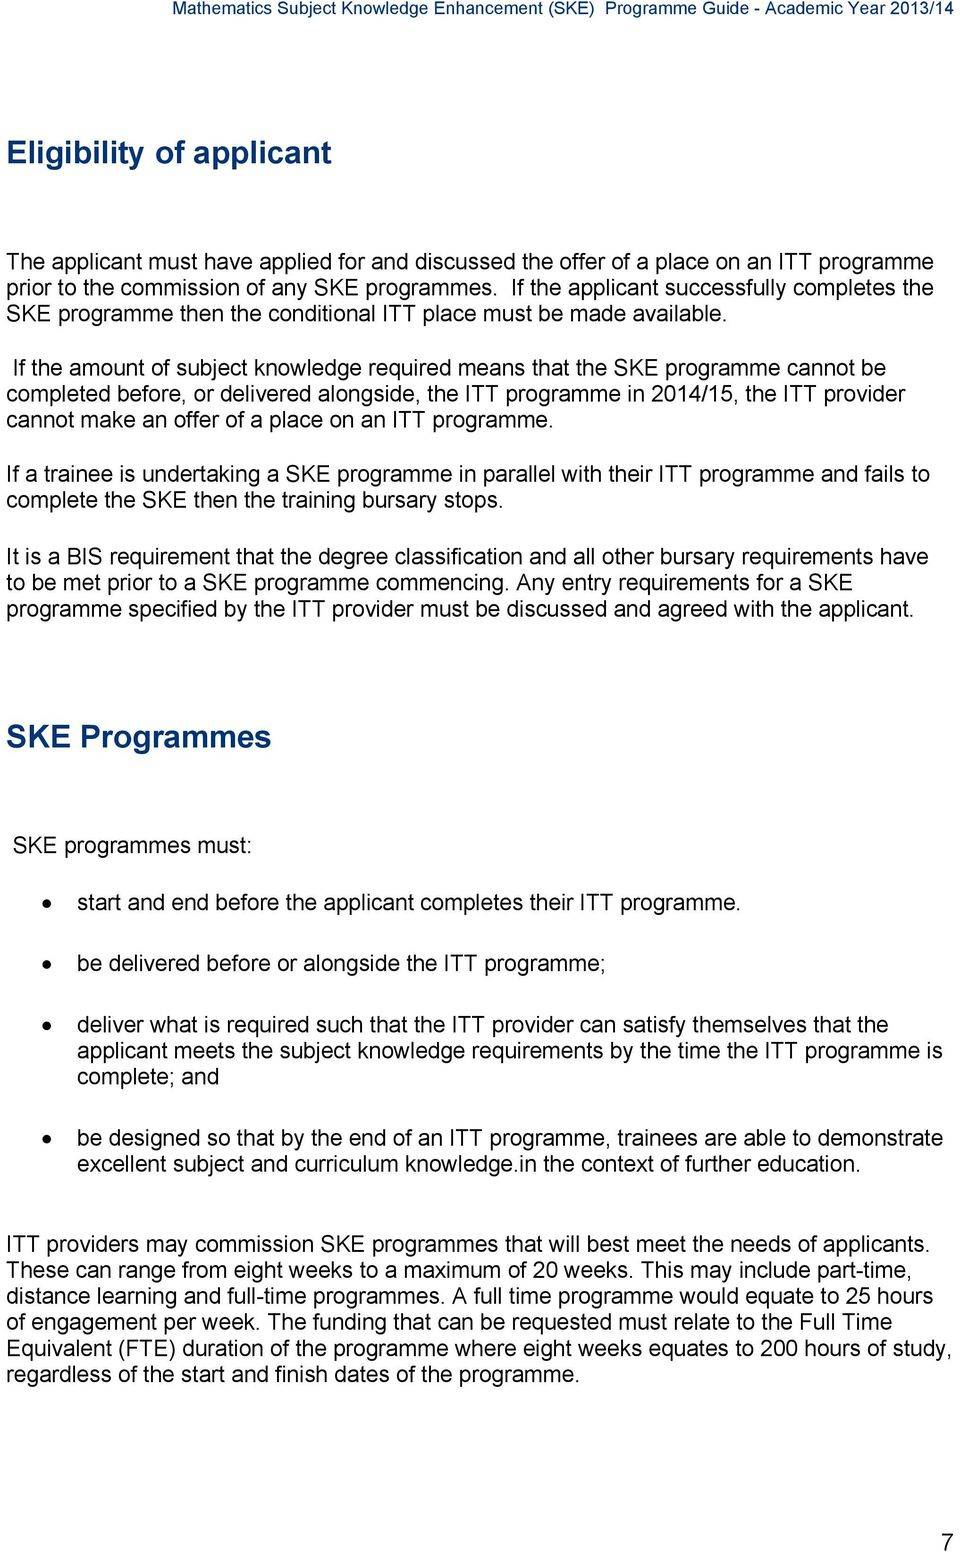 If the amount of subject knowledge required means that the SKE programme cannot be completed before, or delivered alongside, the ITT programme in 2014/15, the ITT provider cannot make an offer of a